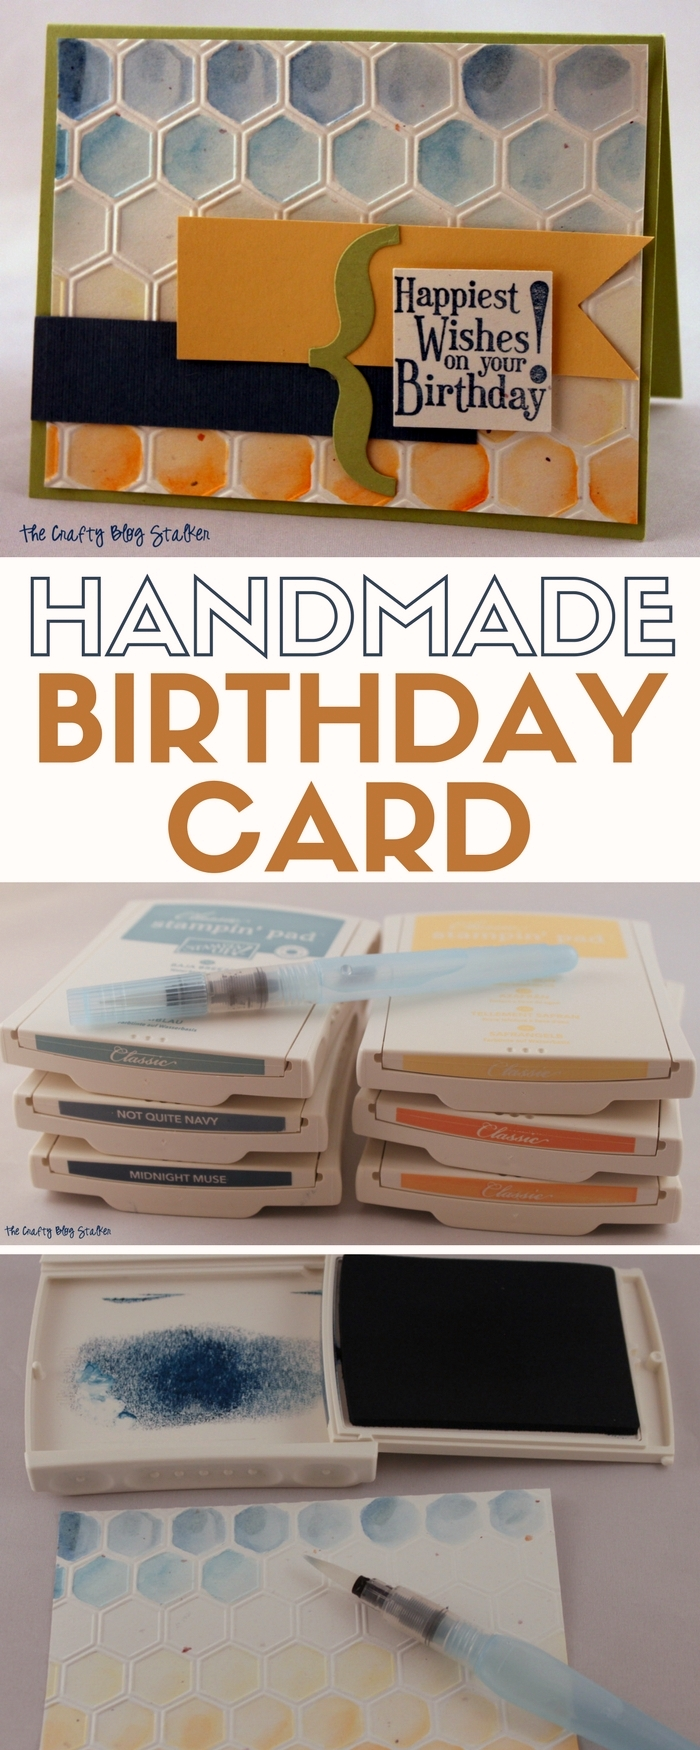 Create a Handmade Birthday Card for your favorite person! An easy DIY craft tutorial idea. Happiest Wishes on your Birthday!